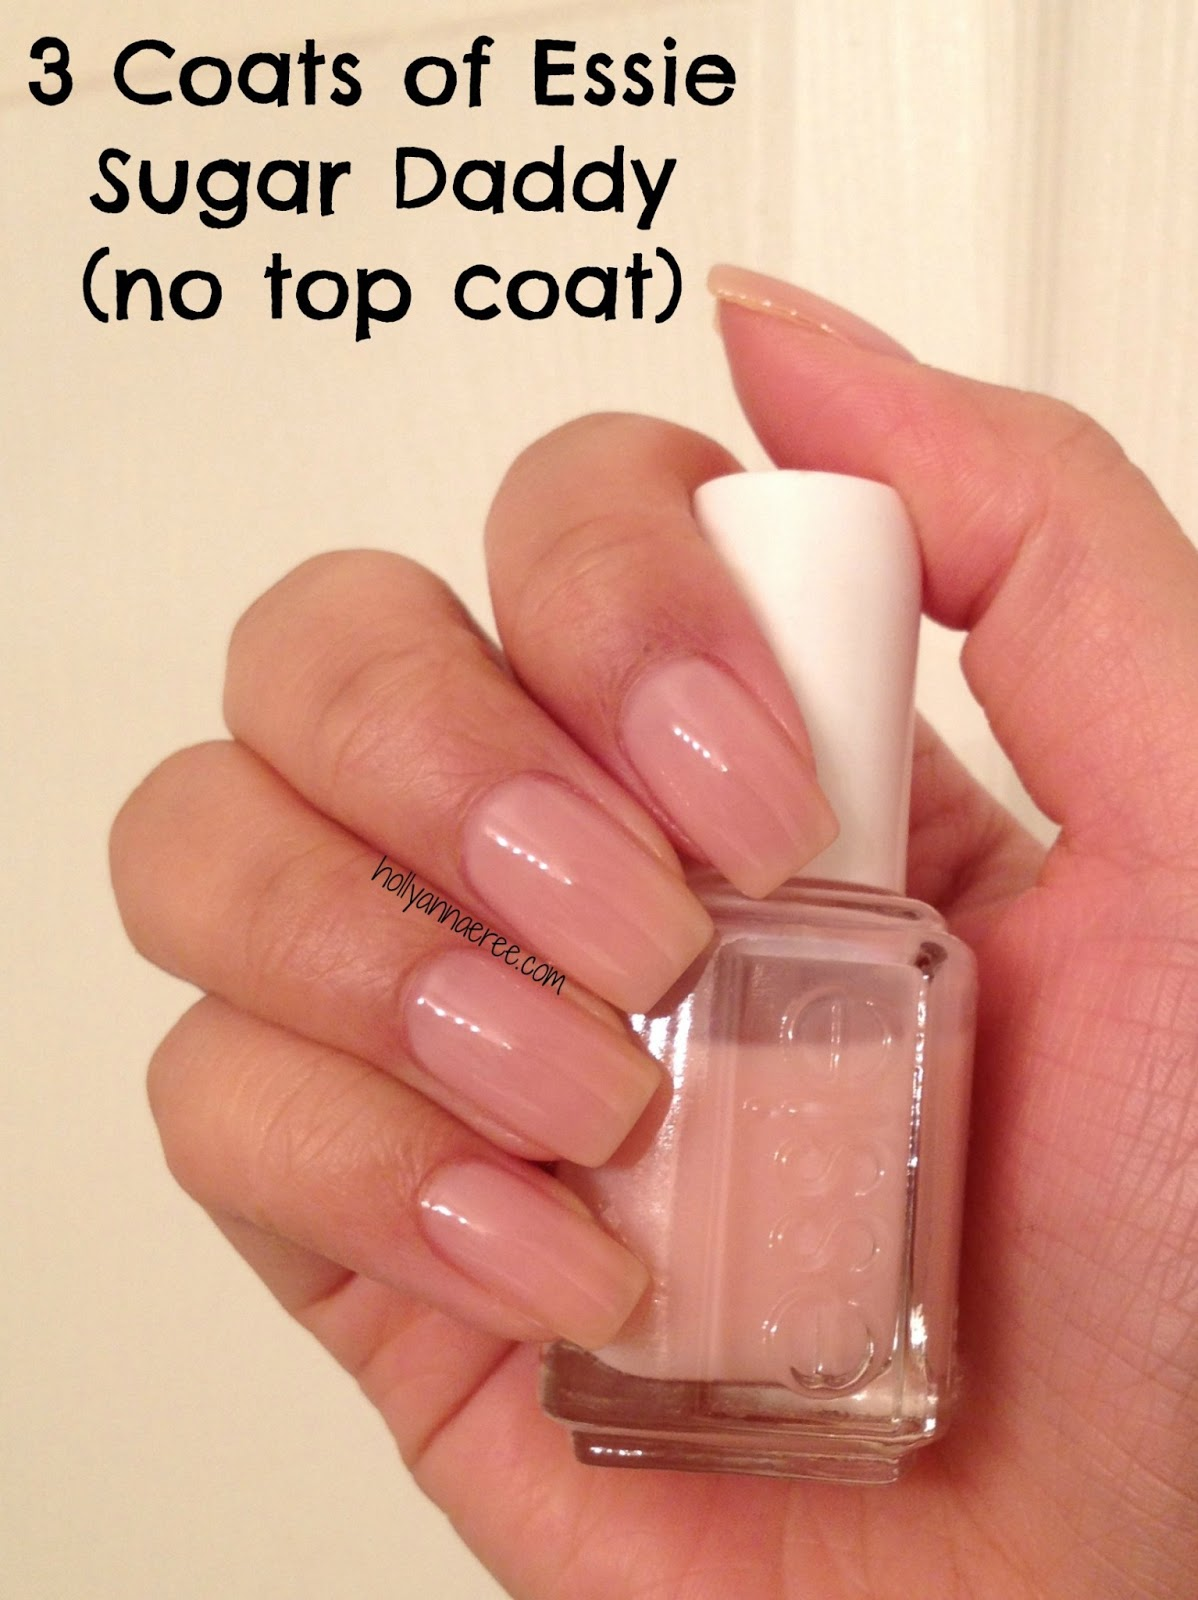 Holly Ann-AeRee 2.0: Fresh Paint: Essie Sugar Daddy - Underrated ...